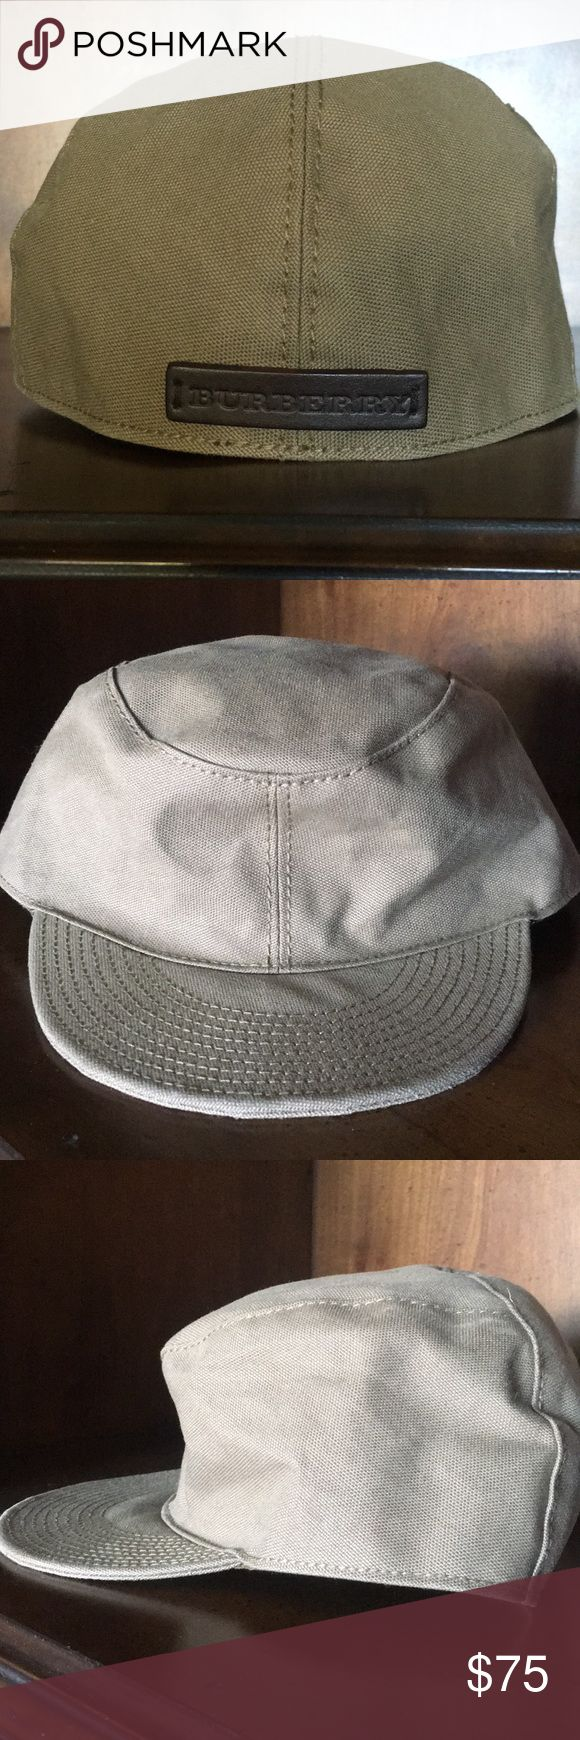 BURBERRY cotton cap Sporty Burberry cap  - New, no tags  - XL, runs small  - 100% cotton lining with leather Burberry tag on back Burberry Accessories Hats